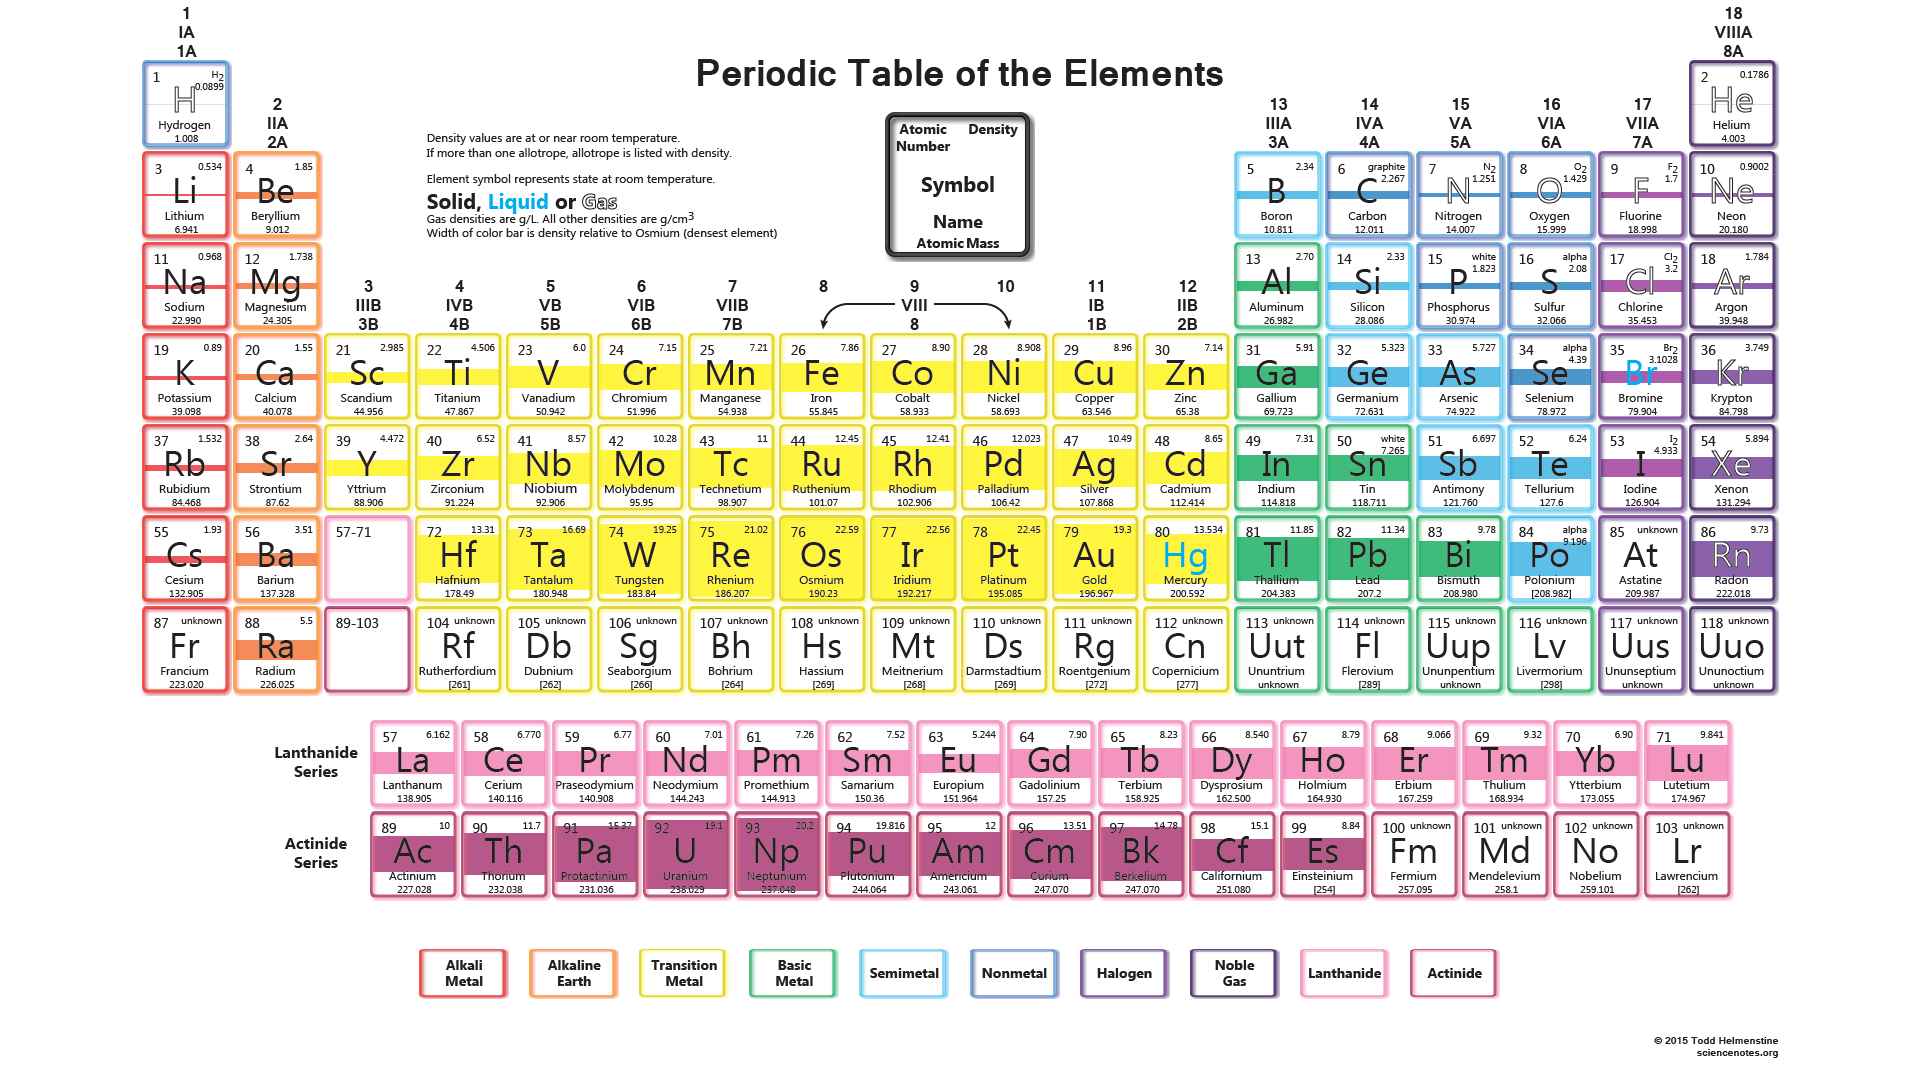 Density of all 118 chemical elements on the periodic table for 118 elements of the periodic table